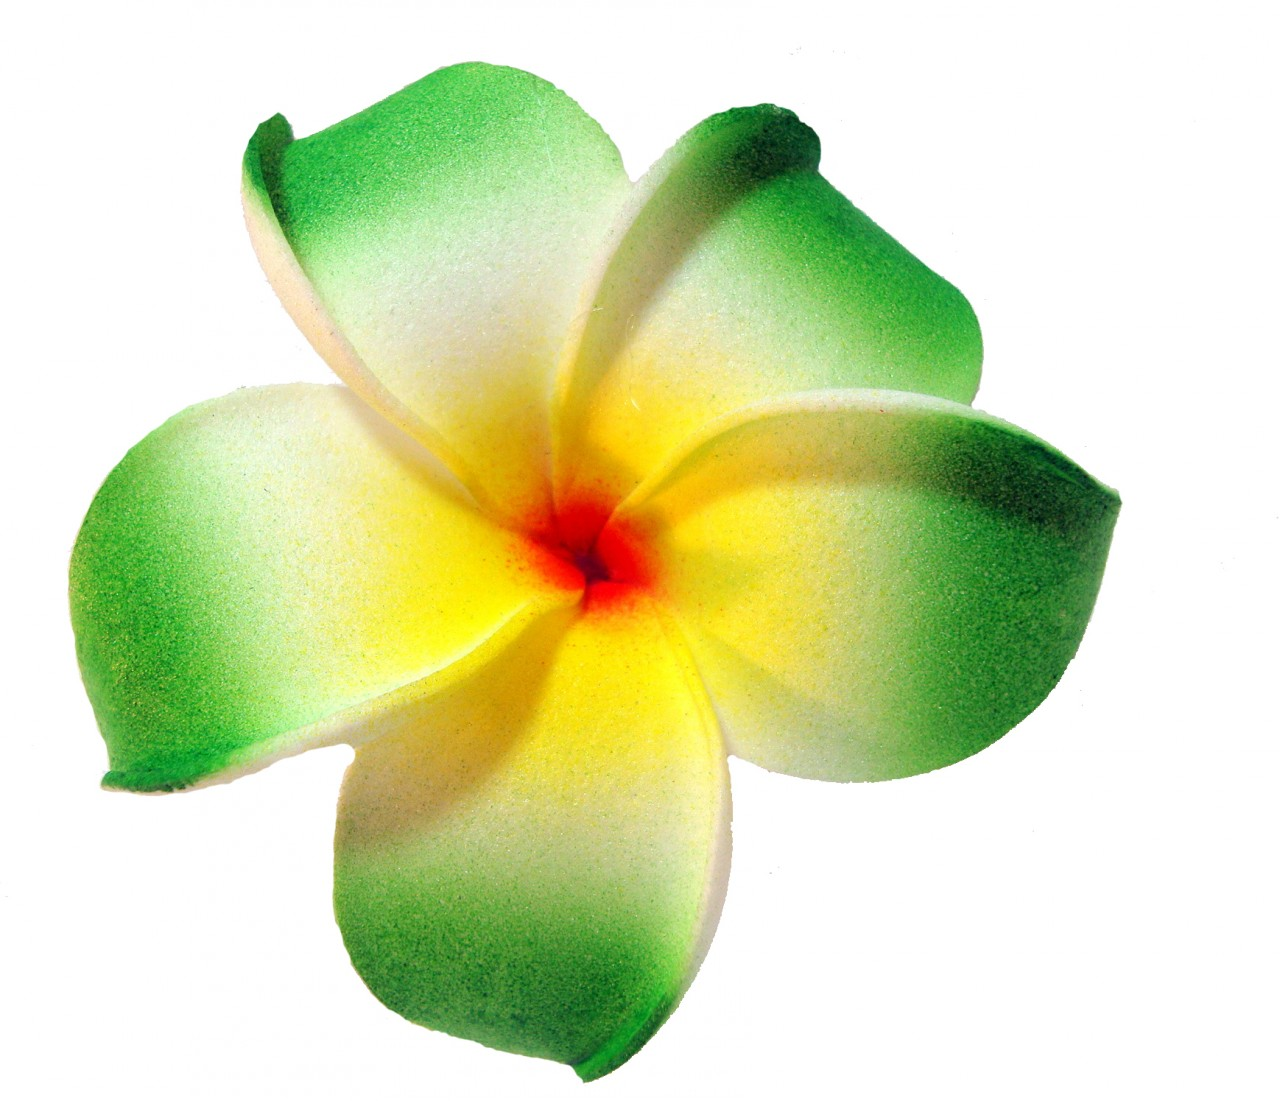 Yellow clipart plumeria Drawings Download clipart Plumeria Plumeria